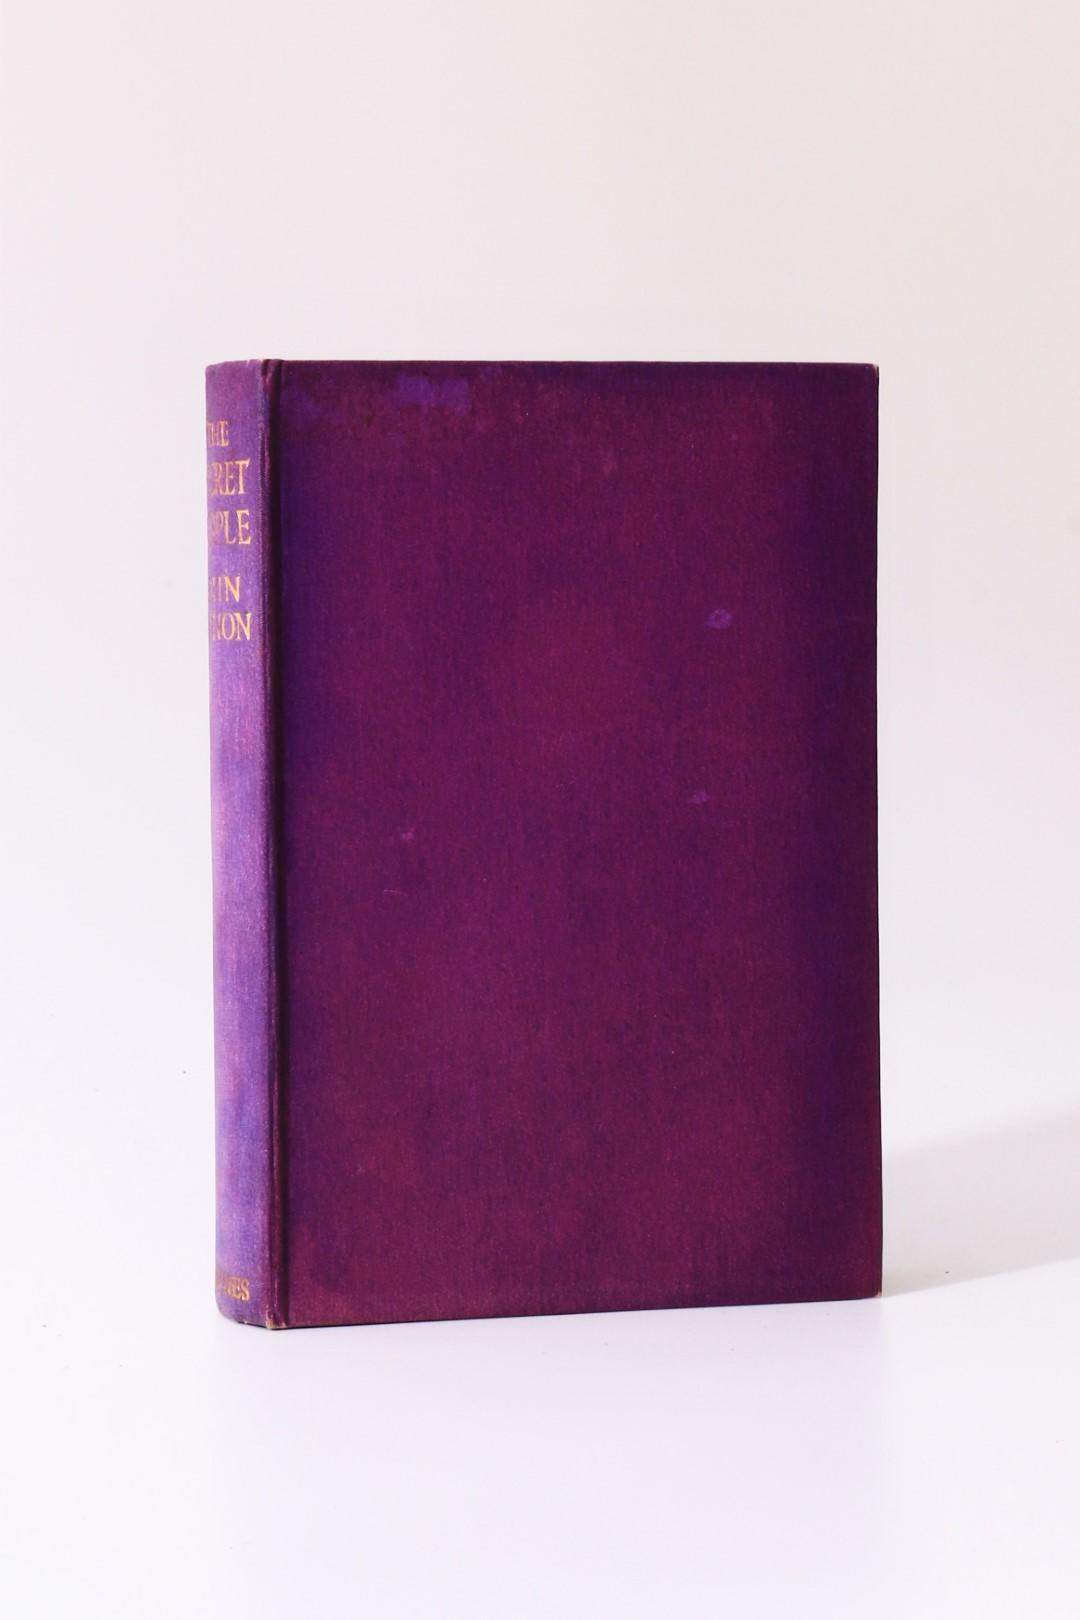 John Beynon [John Wyndham] - The Secret People - Newnes, n.d. [1935], First Edition.